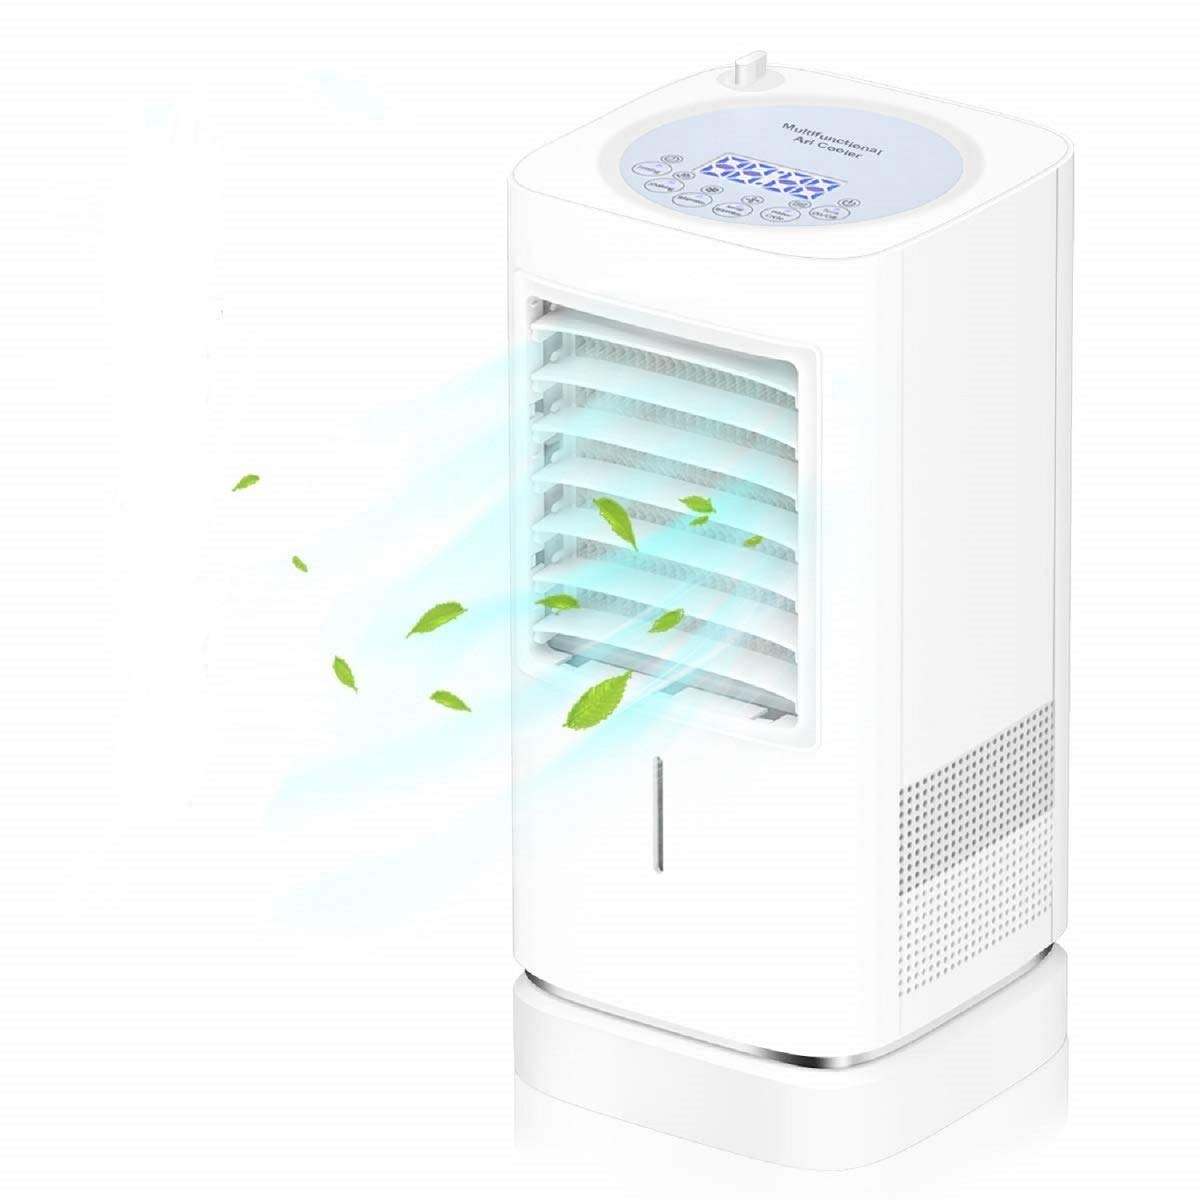 Portable Air Conditioner Fan, Mini Personal Evaporative Air Cooler Small Desktop Cooling Fan with Nightlight and Humidification Function, Super Quiet Personal Table Fan Mini Air Circulator Cooler